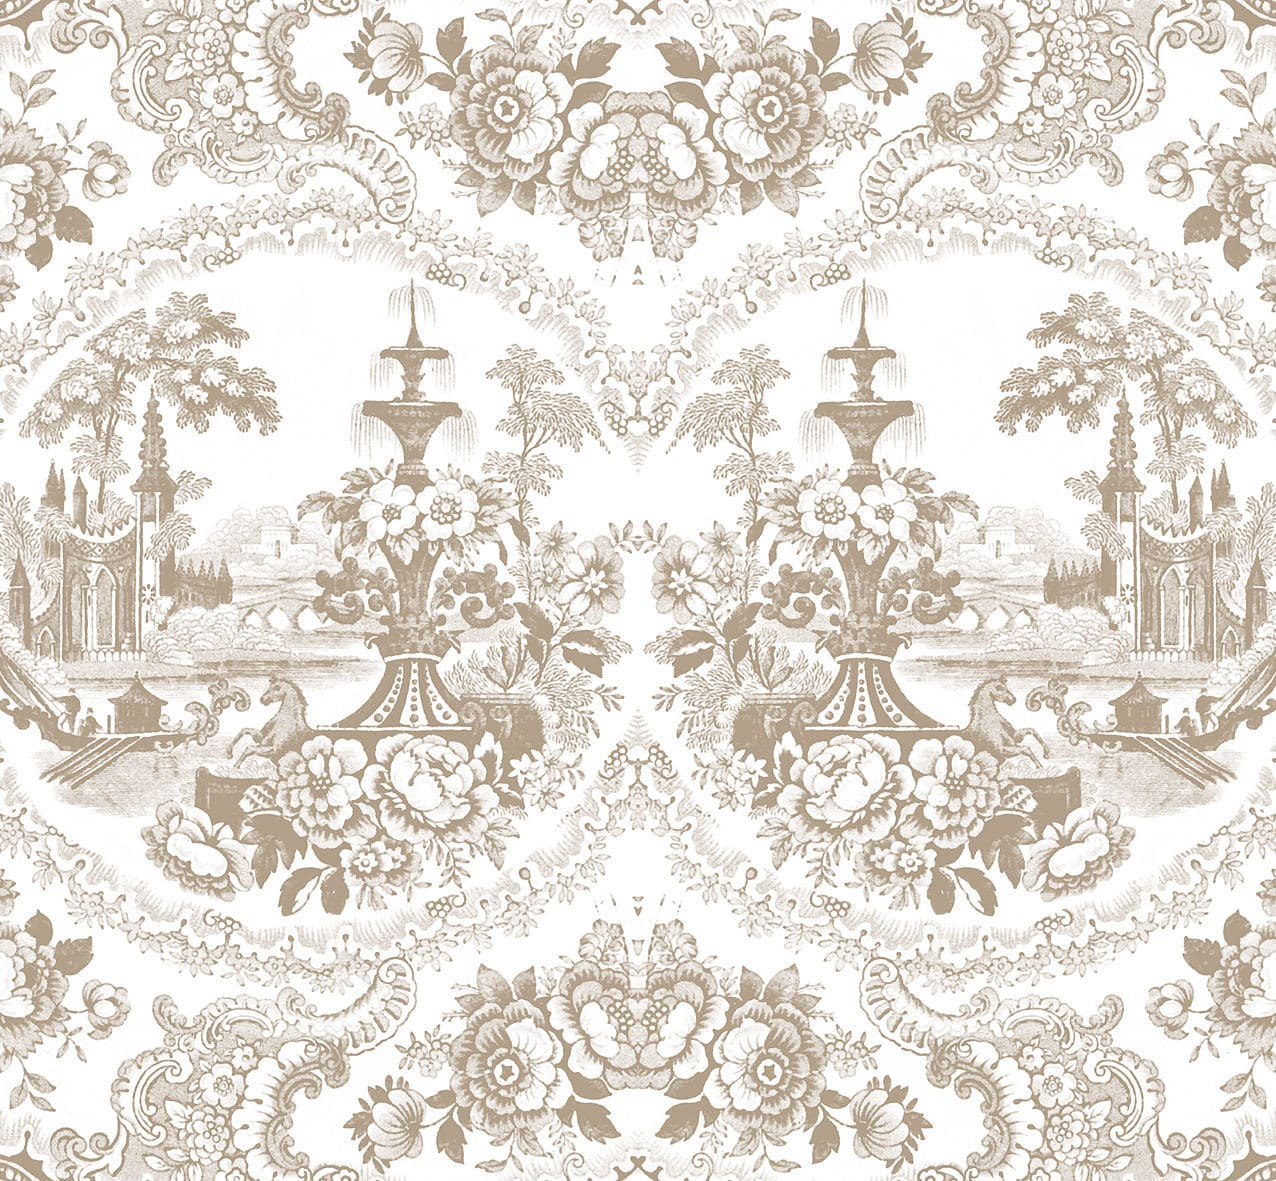 Baroque Style Wallpaper Vintage Fabric Vinyl